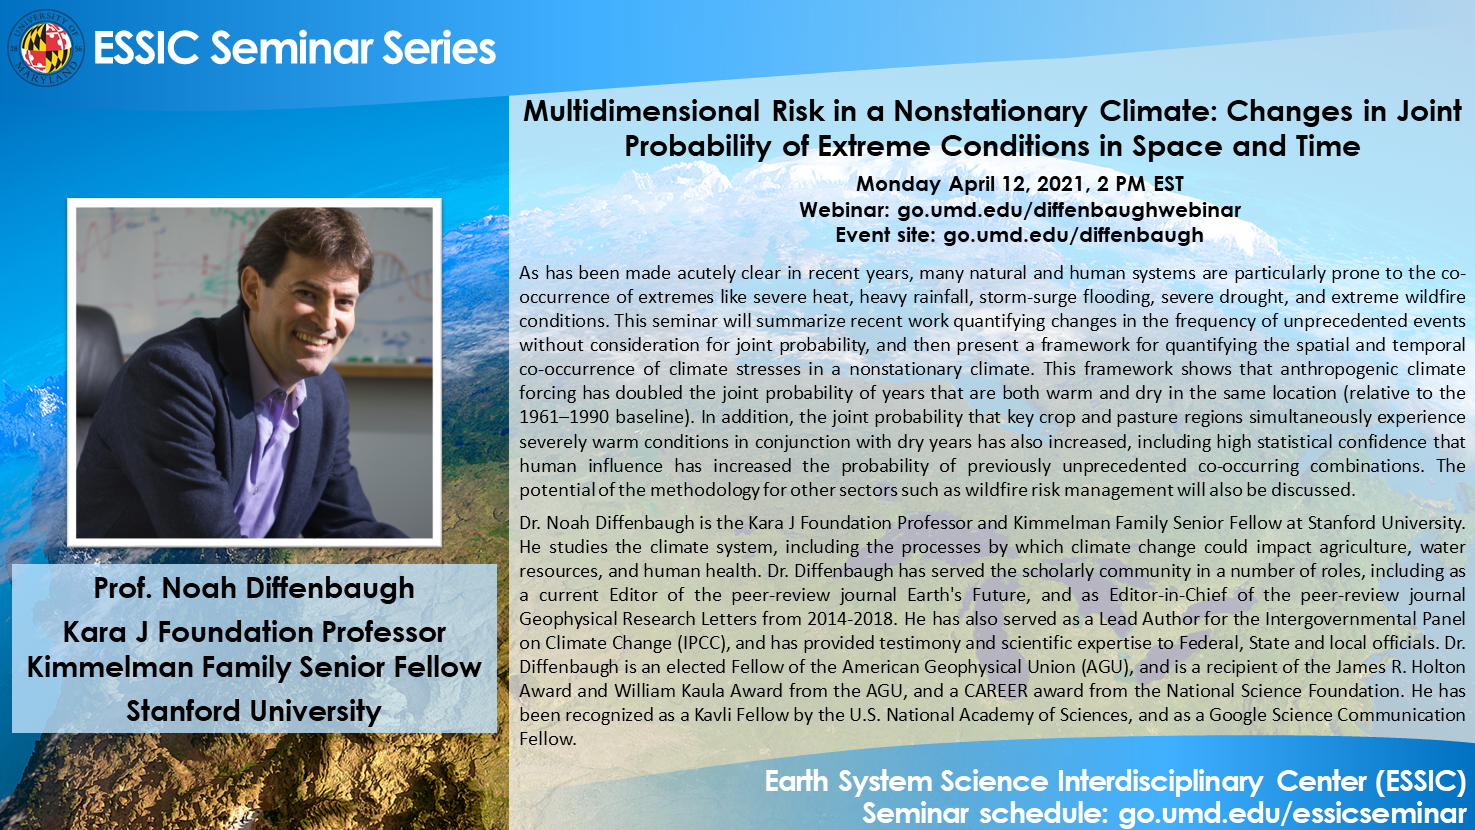 Dr. Noah Diffenbaugh's seminar flyer. All text is on the webpage